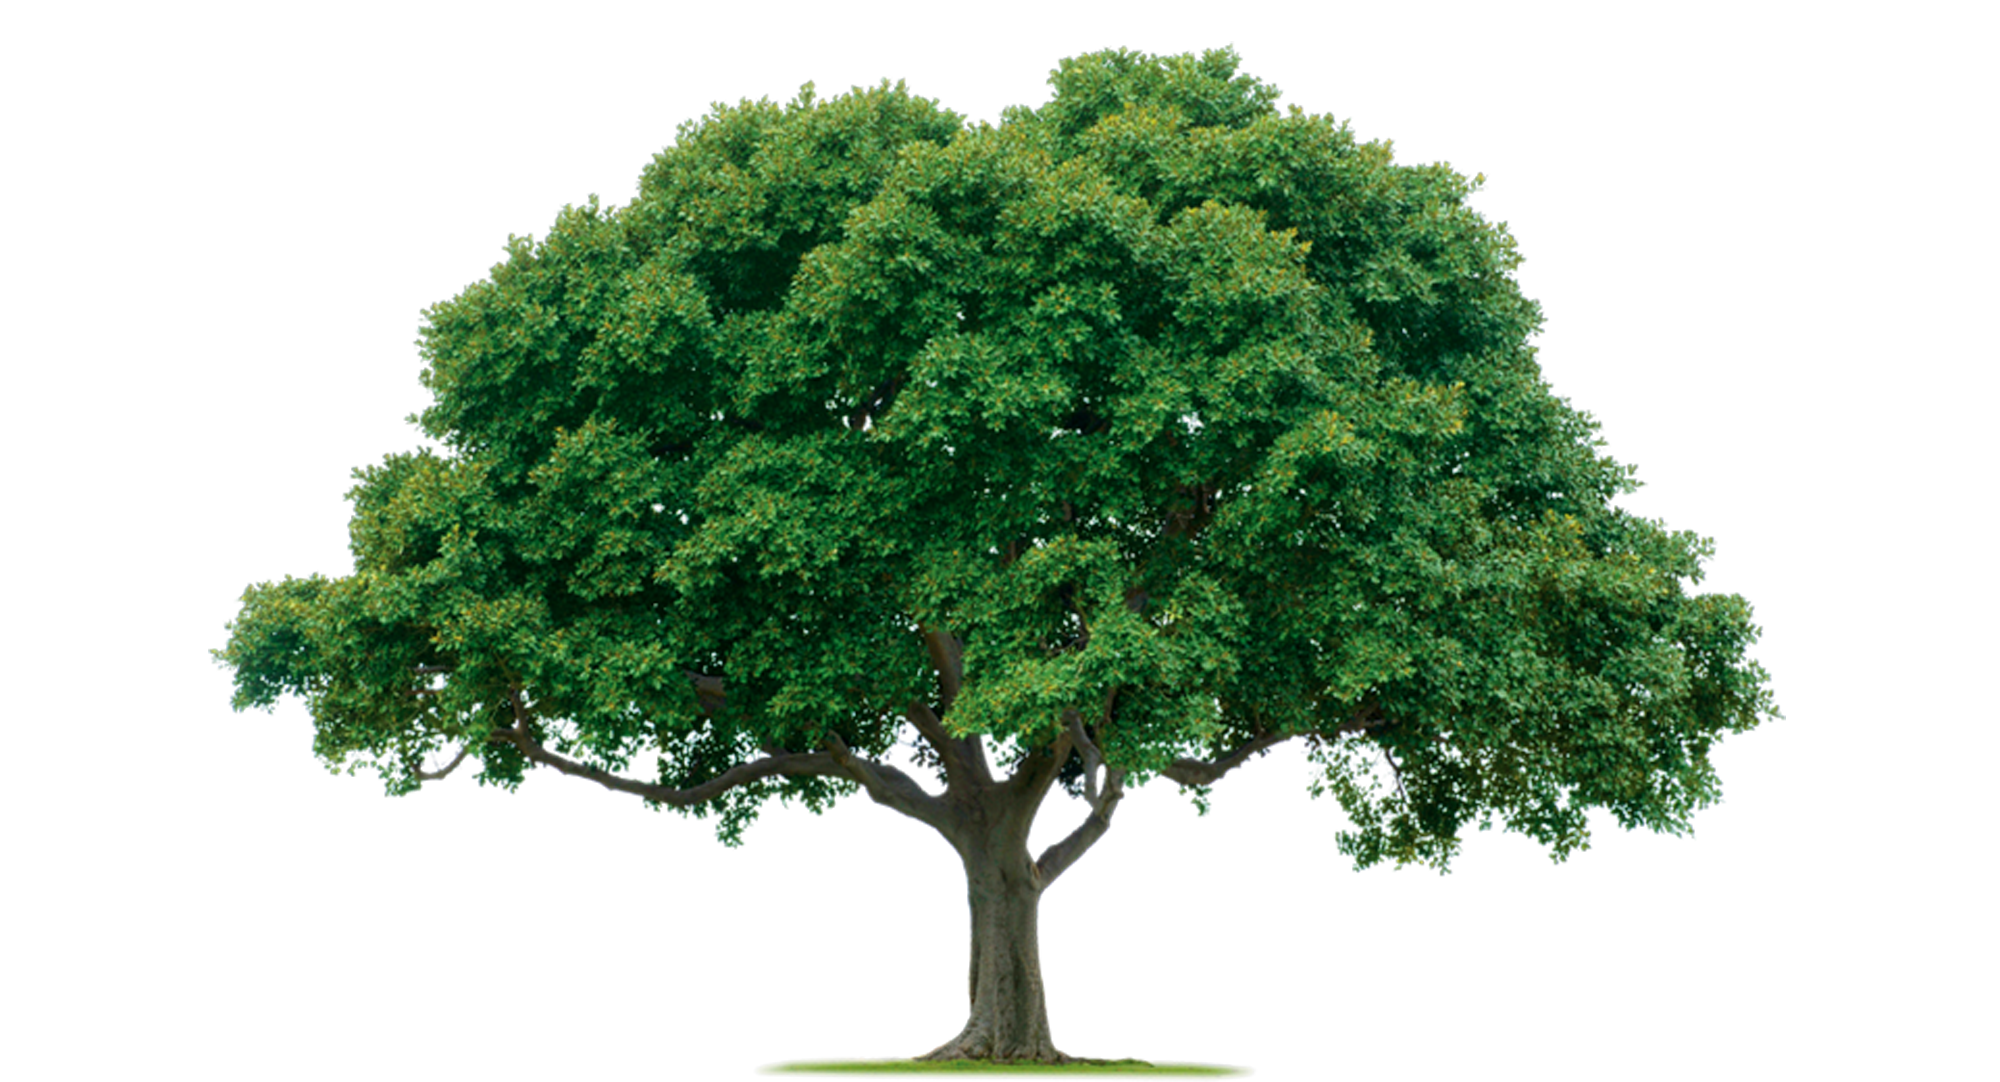 PNG HD Images Of Trees - 126434